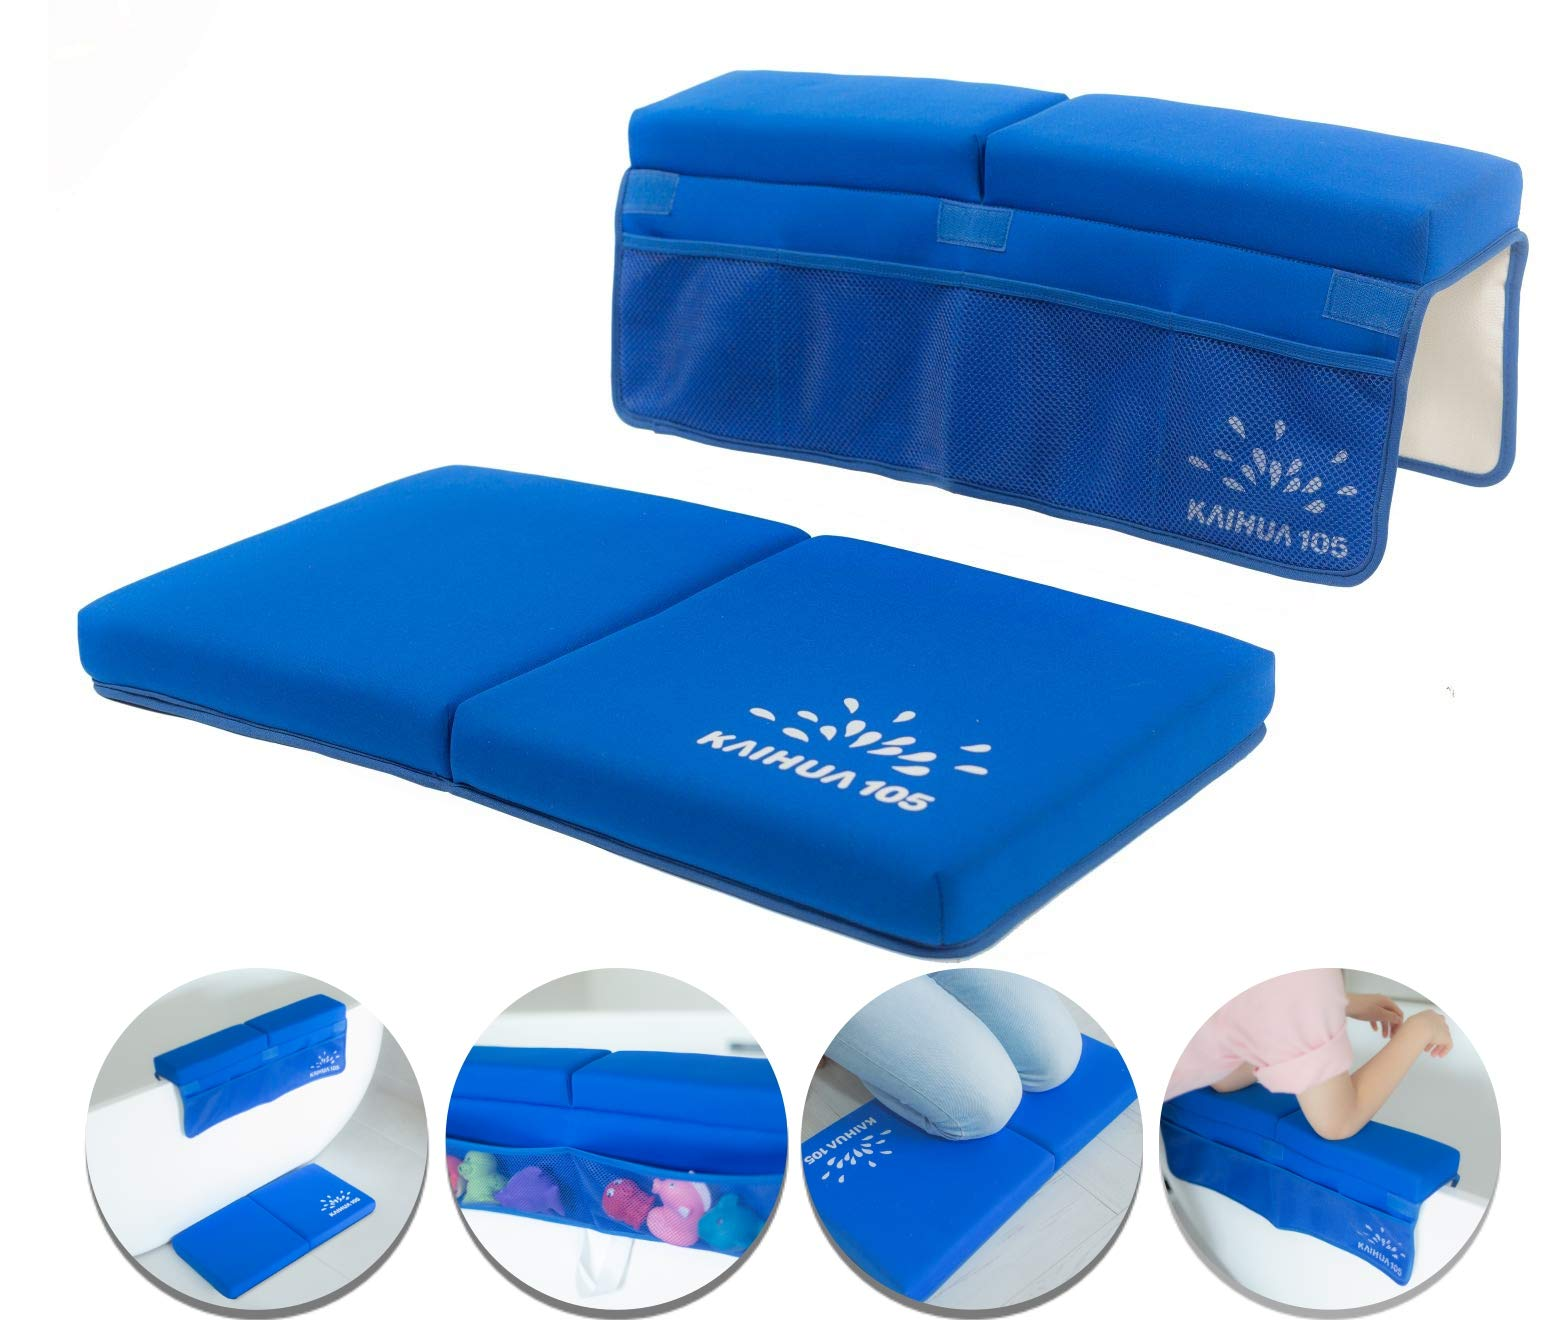 Bath Kneeler and Elbow Rest Pad Set, 1.5 inch Thick Bath Kneeling Pad, Bathtub Elbow Support with 6 Mesh Pockets, Non-Slip Rubber Backing, Baby Stuff and Accessories for Bath Time, Baby Shower Gifts by Kaihua105